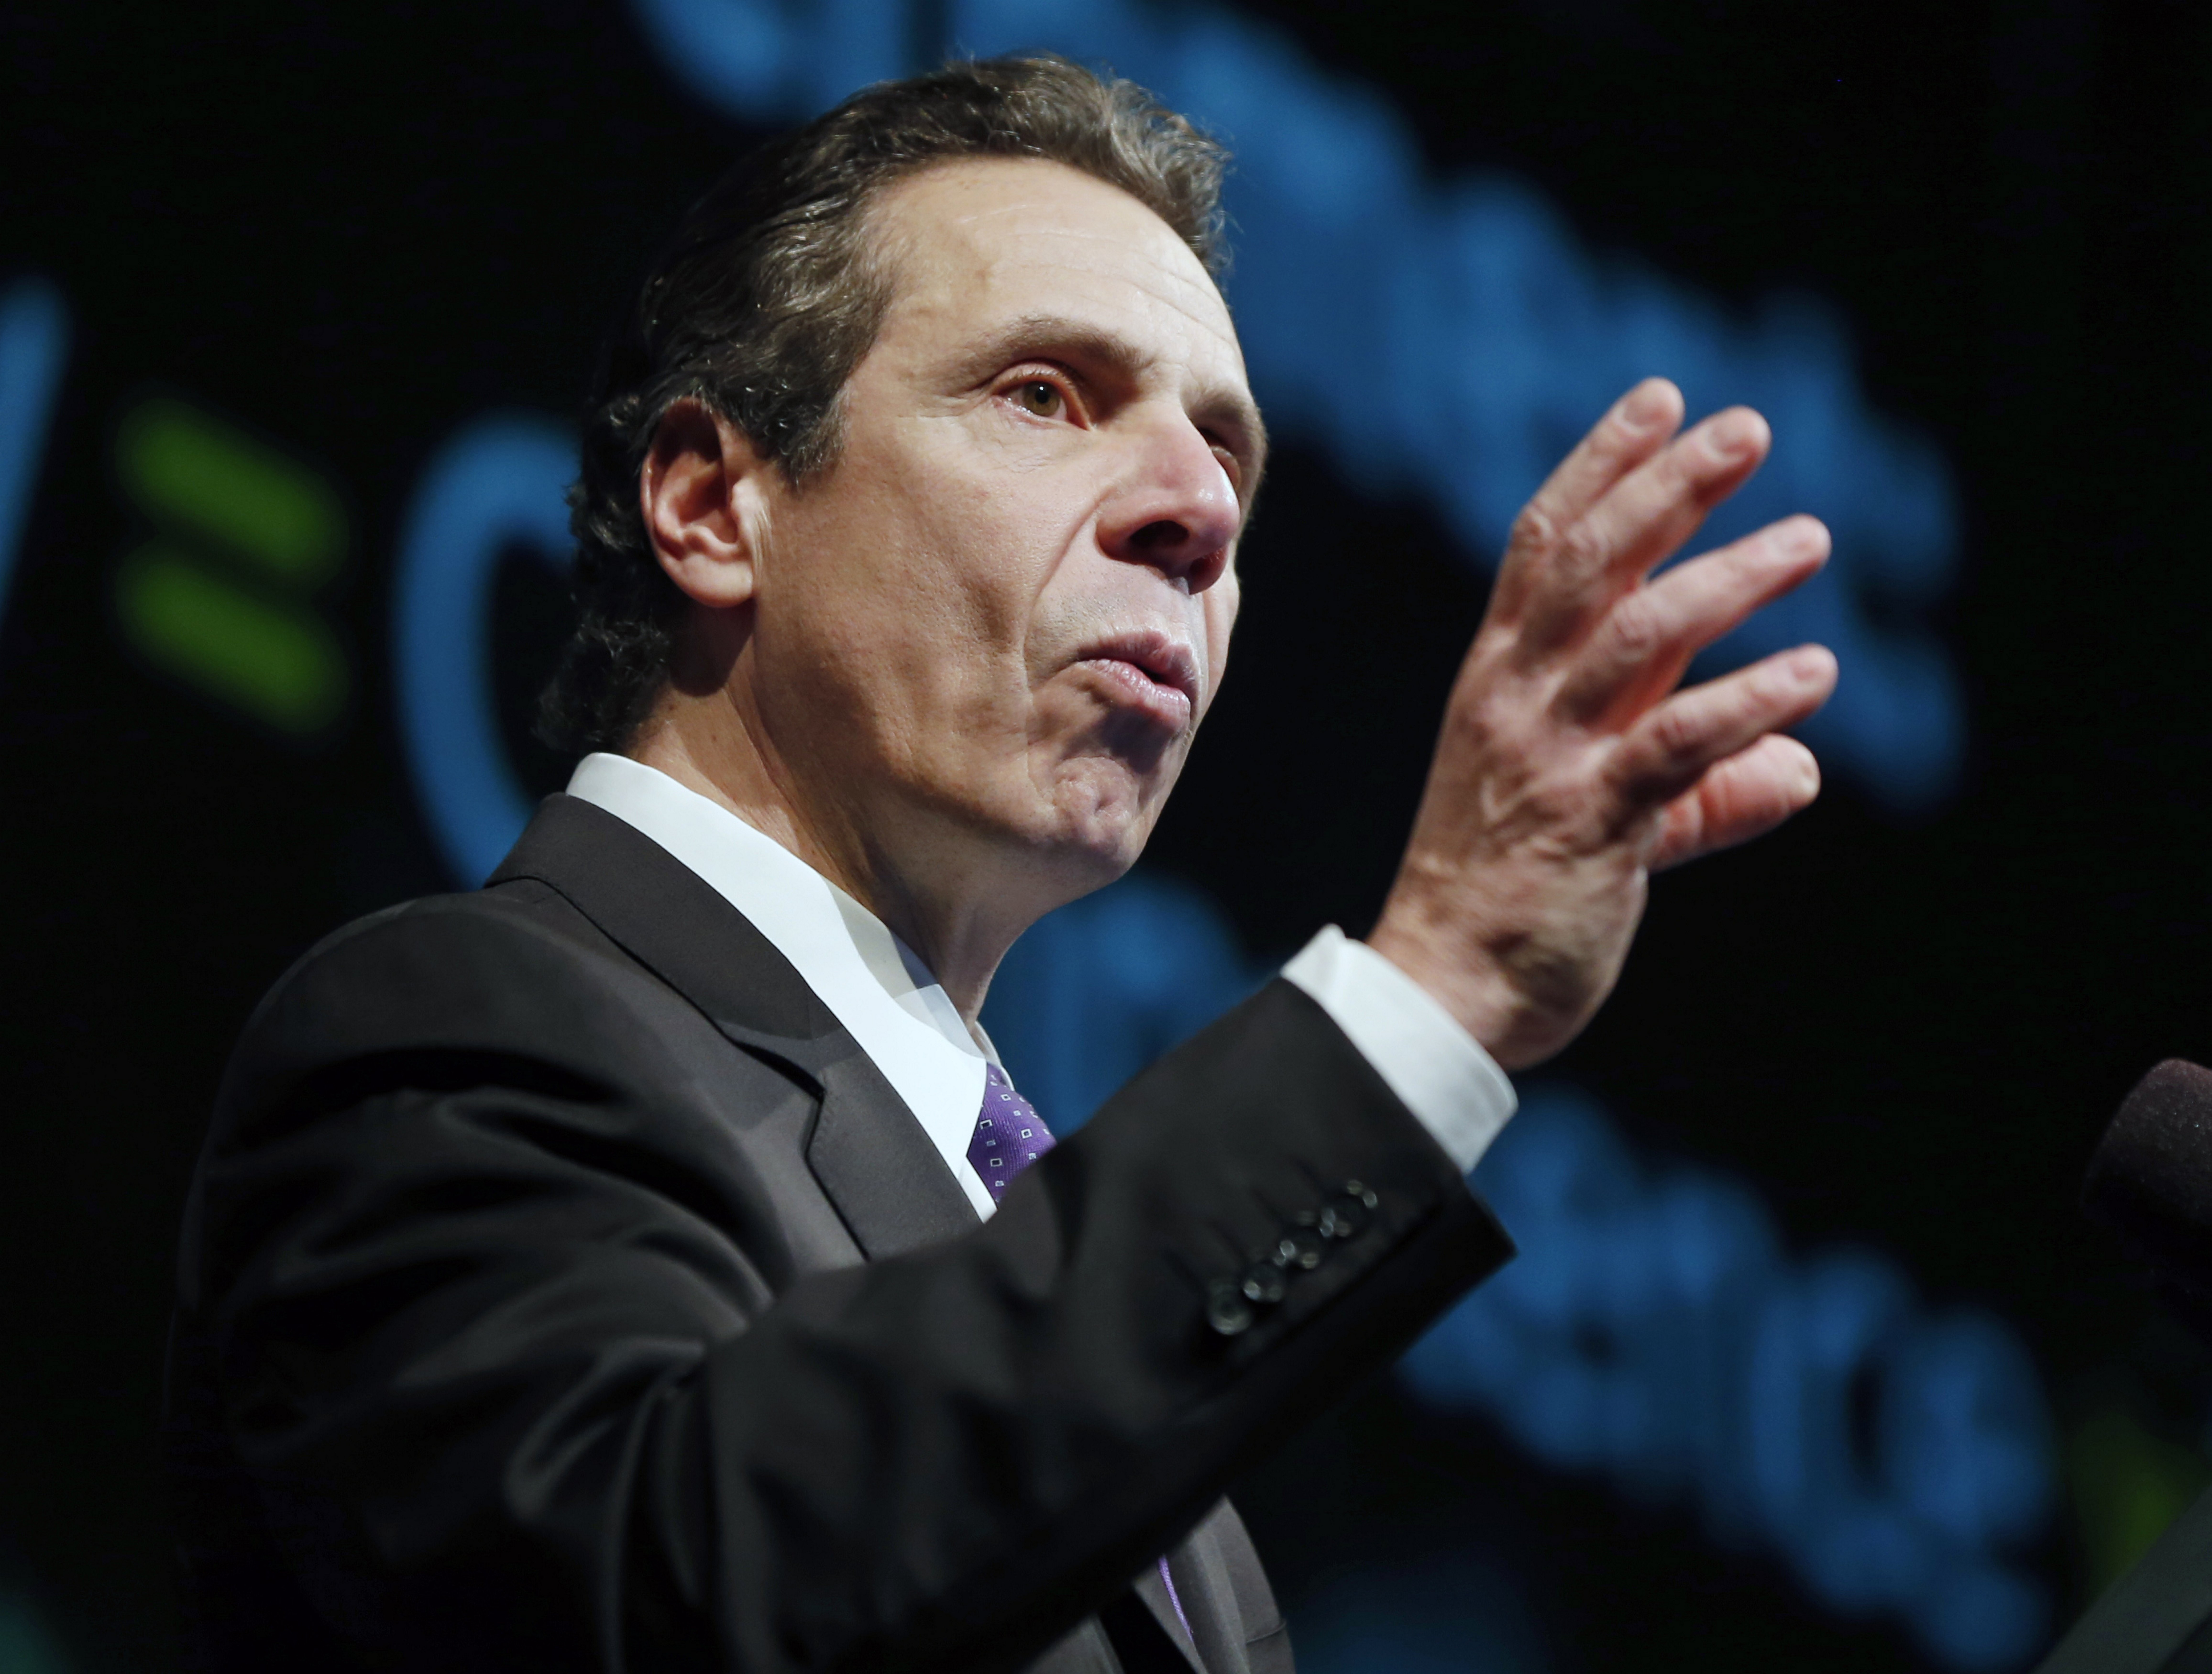 Gov. Andrew Cuomo argues that college for inmates will ultimately decrease the number of men and women behind bars. His proposal has drawn fire from Republicans. (Associated Press file photo)